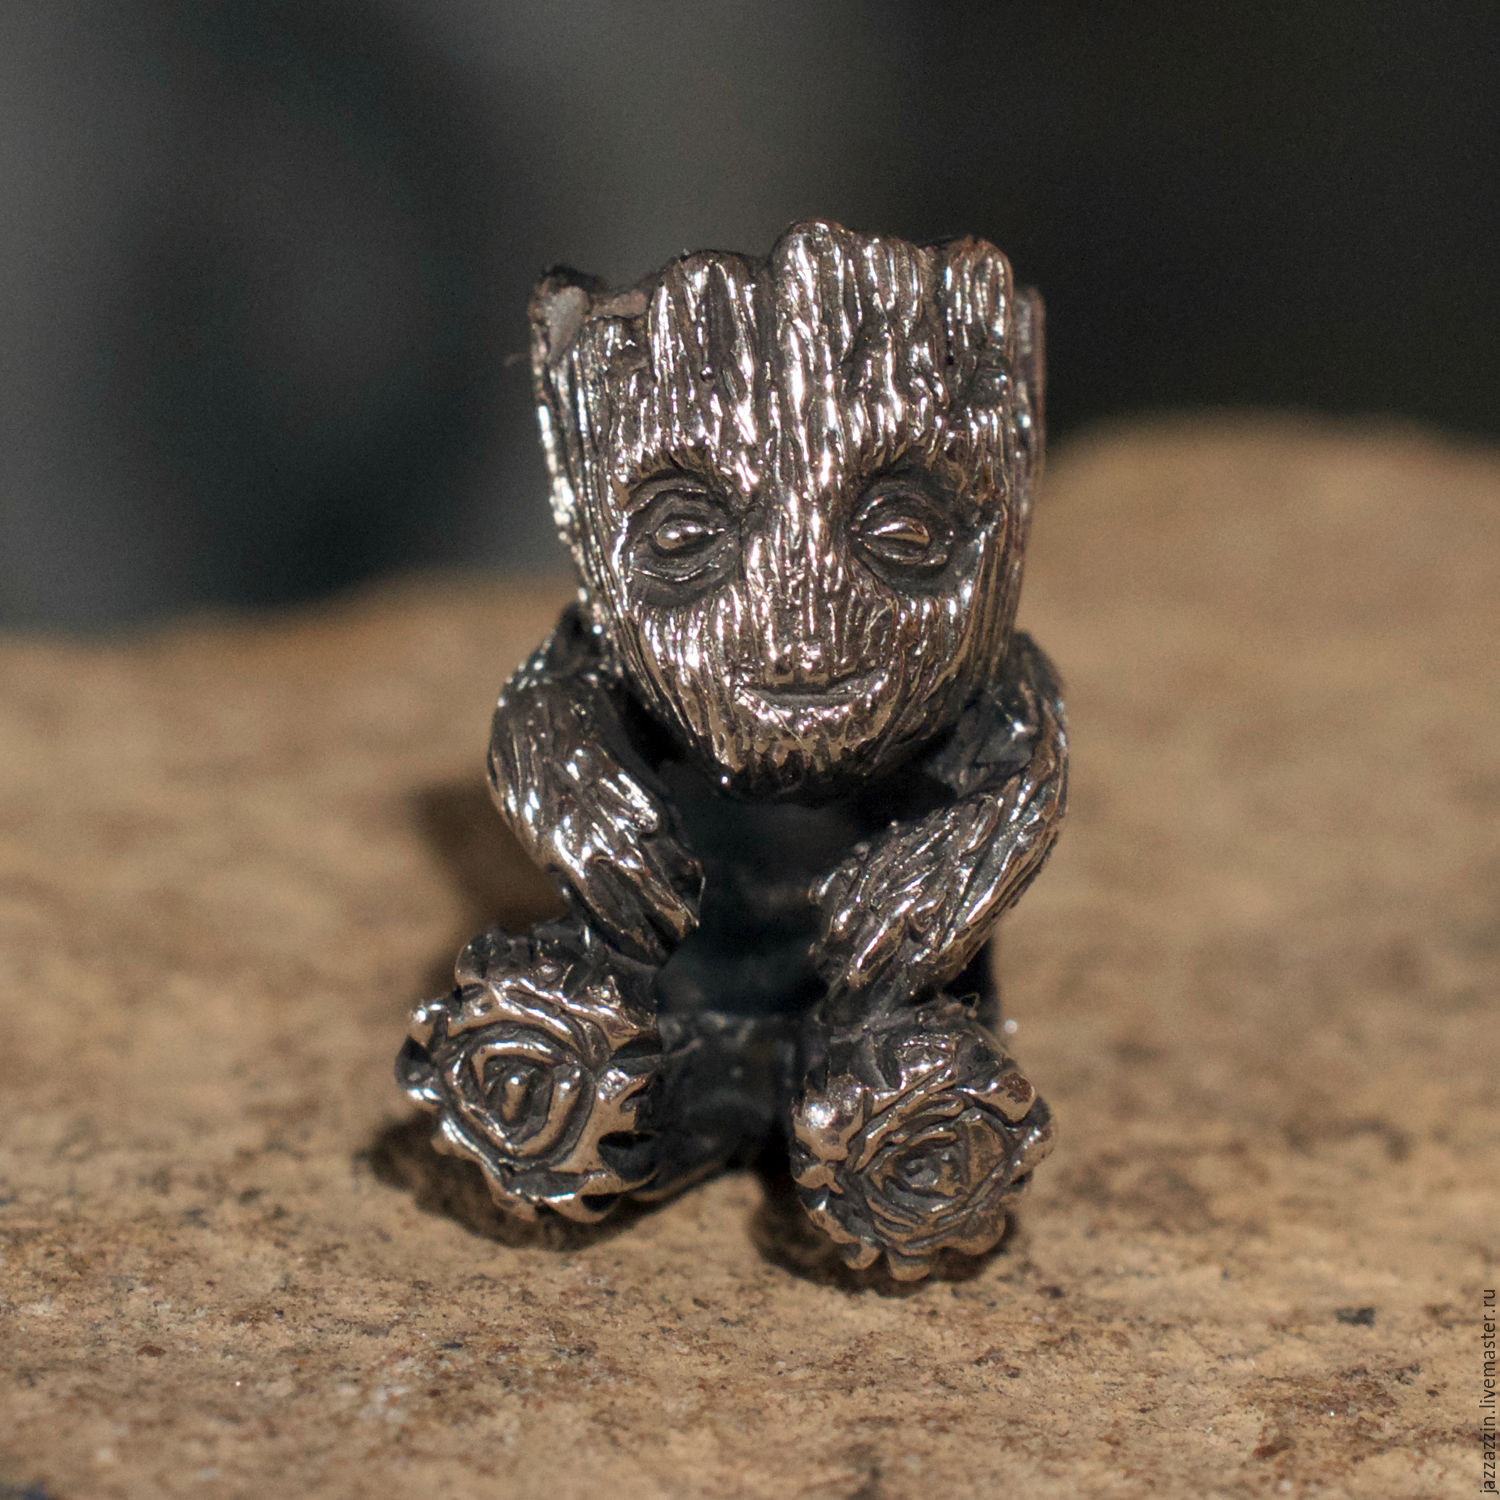 Groot Charm Shop Online On Livemaster With Shipping